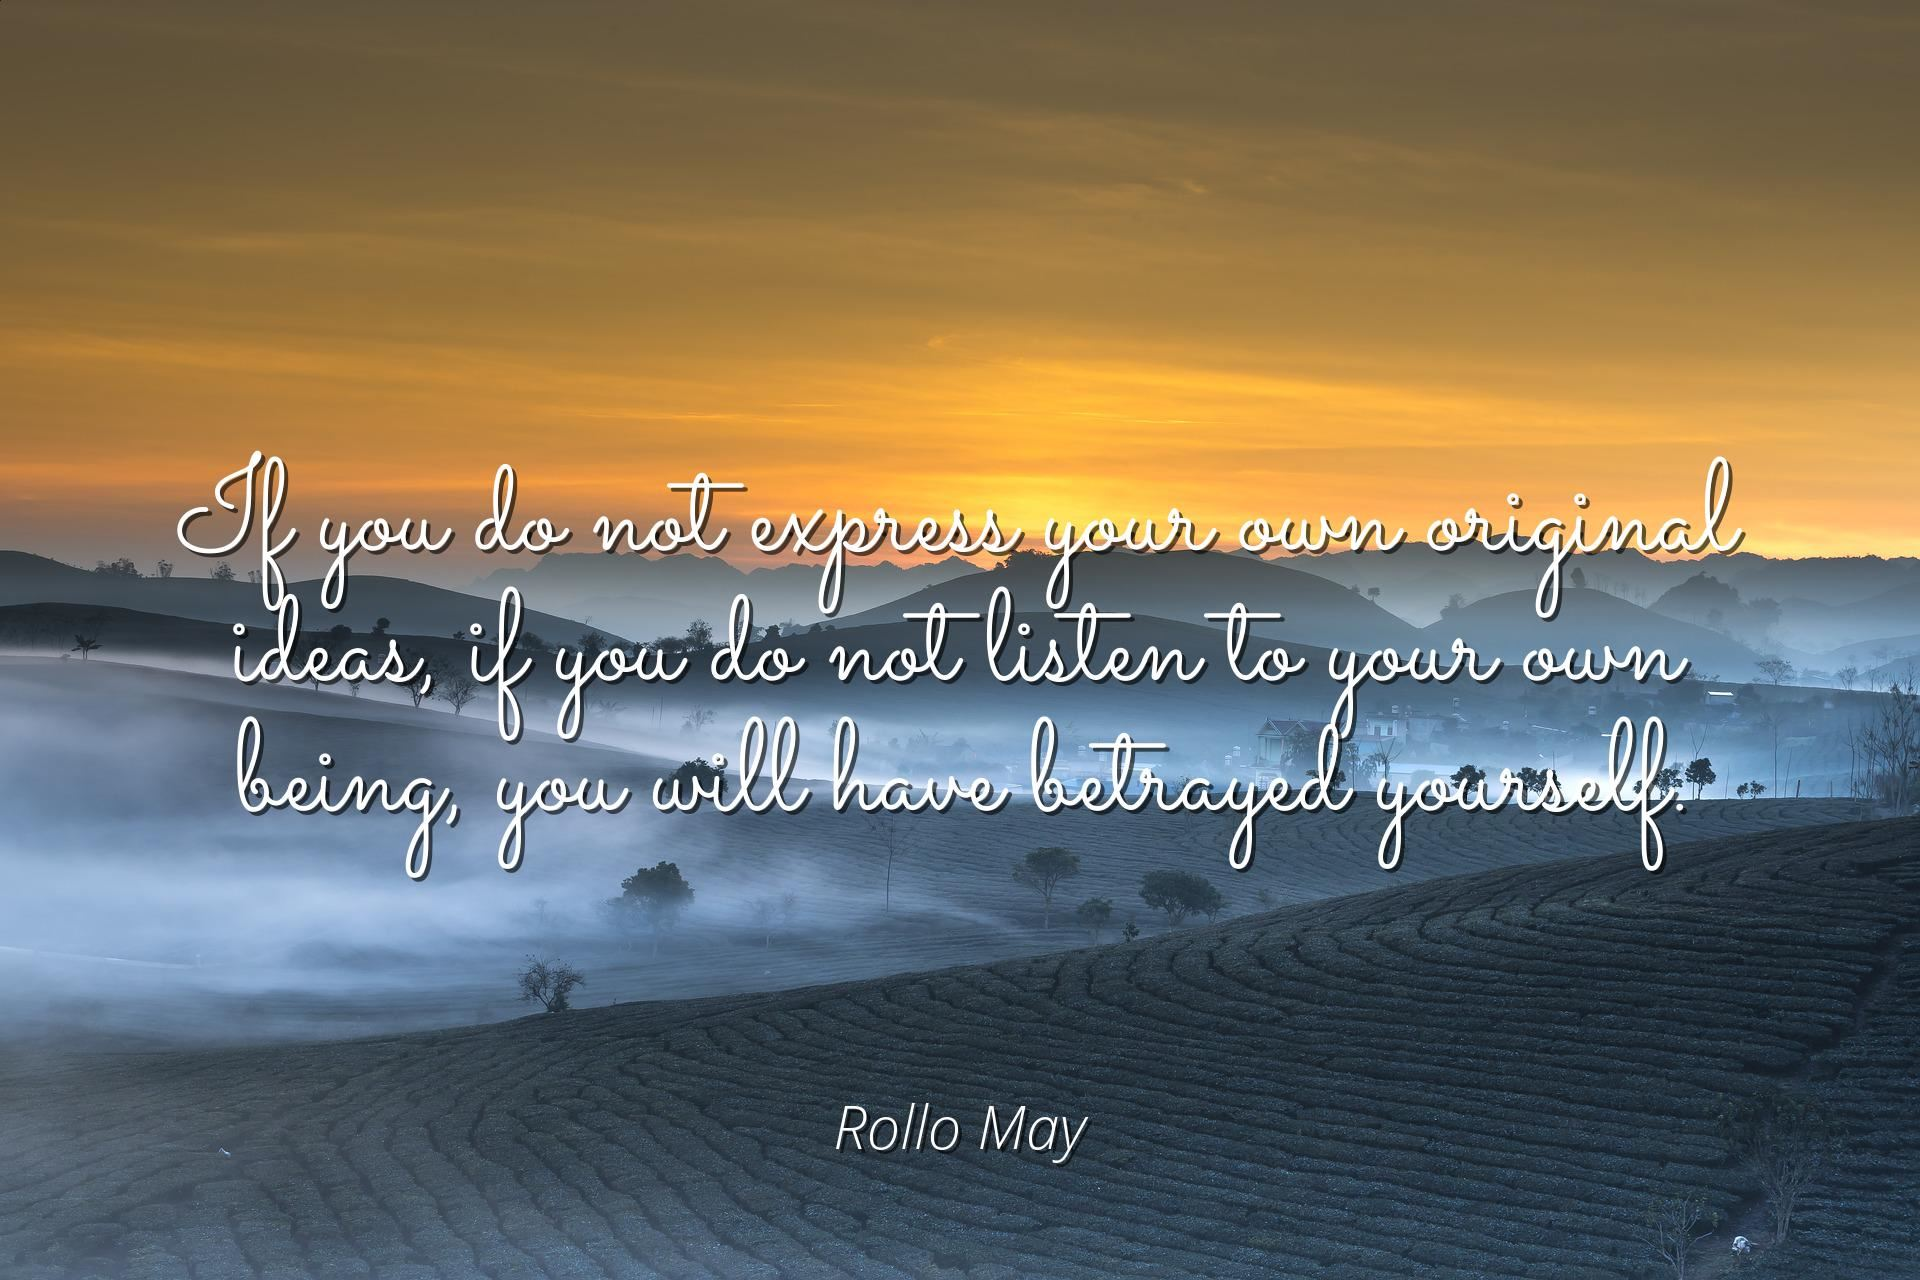 Rollo Express Rollo May Famous Quotes Laminated Poster Print 24x20 If You Do Not Express Your Own Original Ideas If You Do Not Listen To Your Own Being You